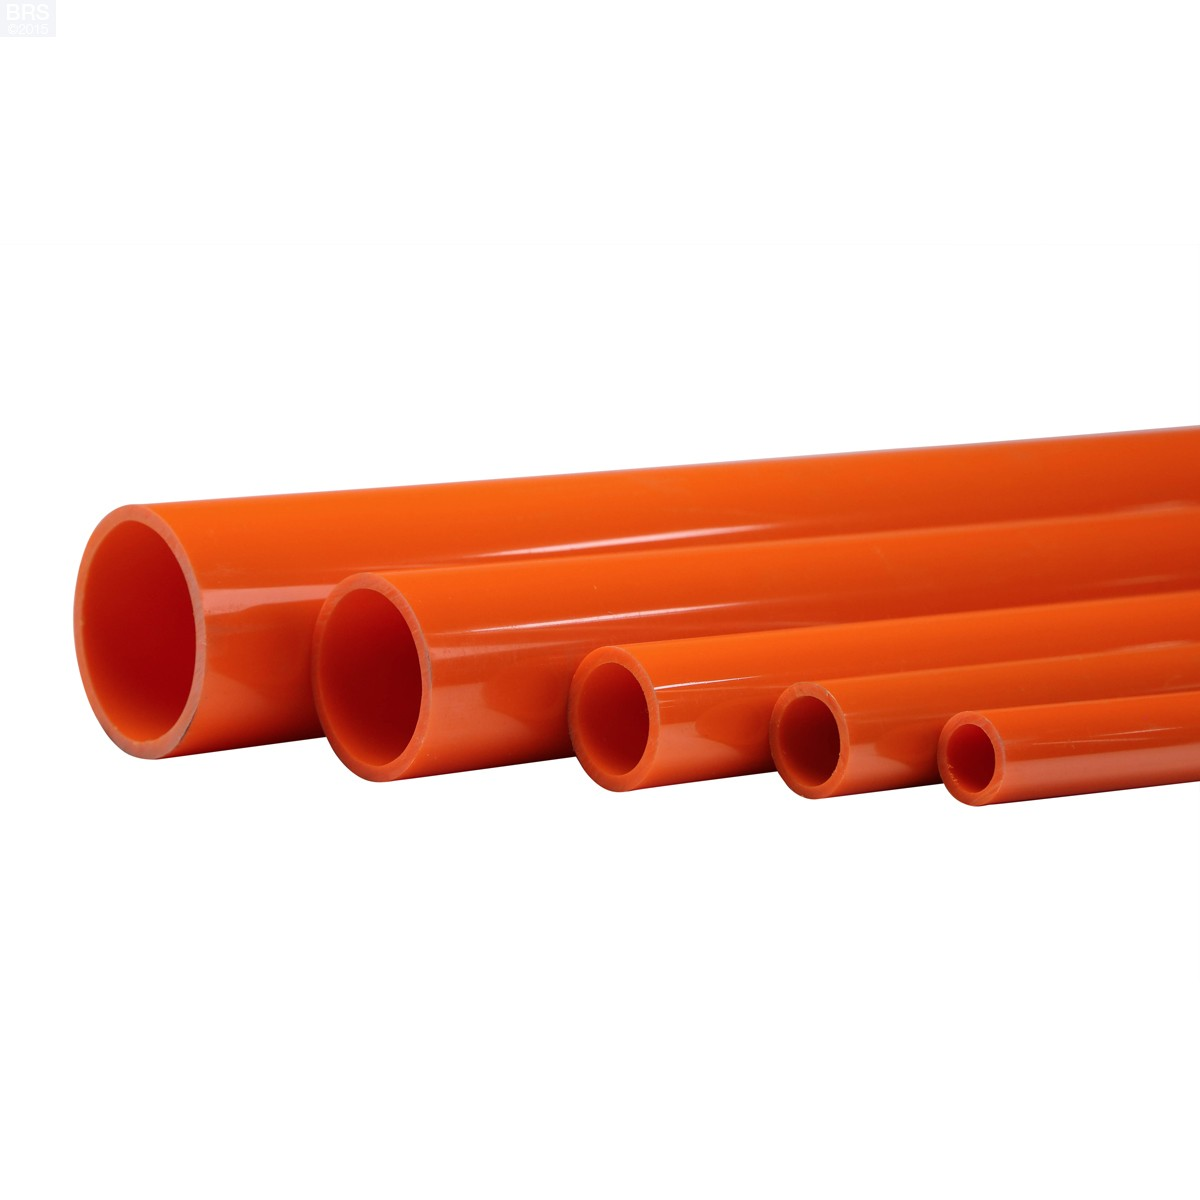 Furniture grade pvc pipe fittings dp